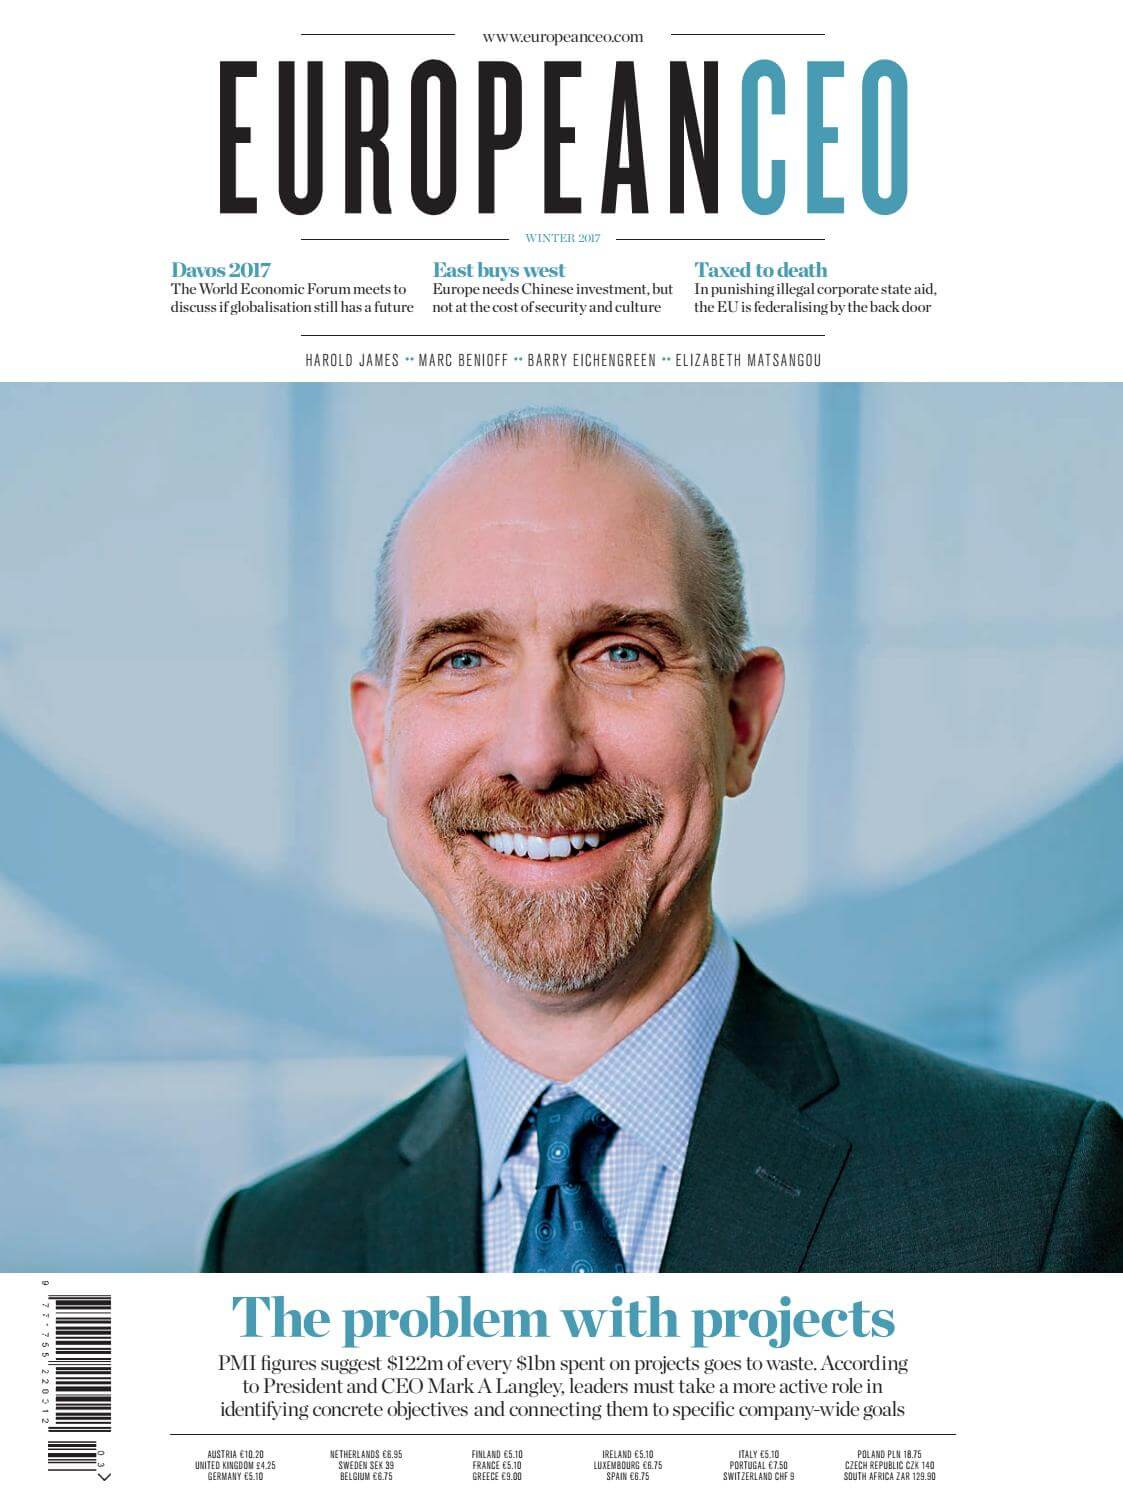 European CEO Magazine, Winter 2017